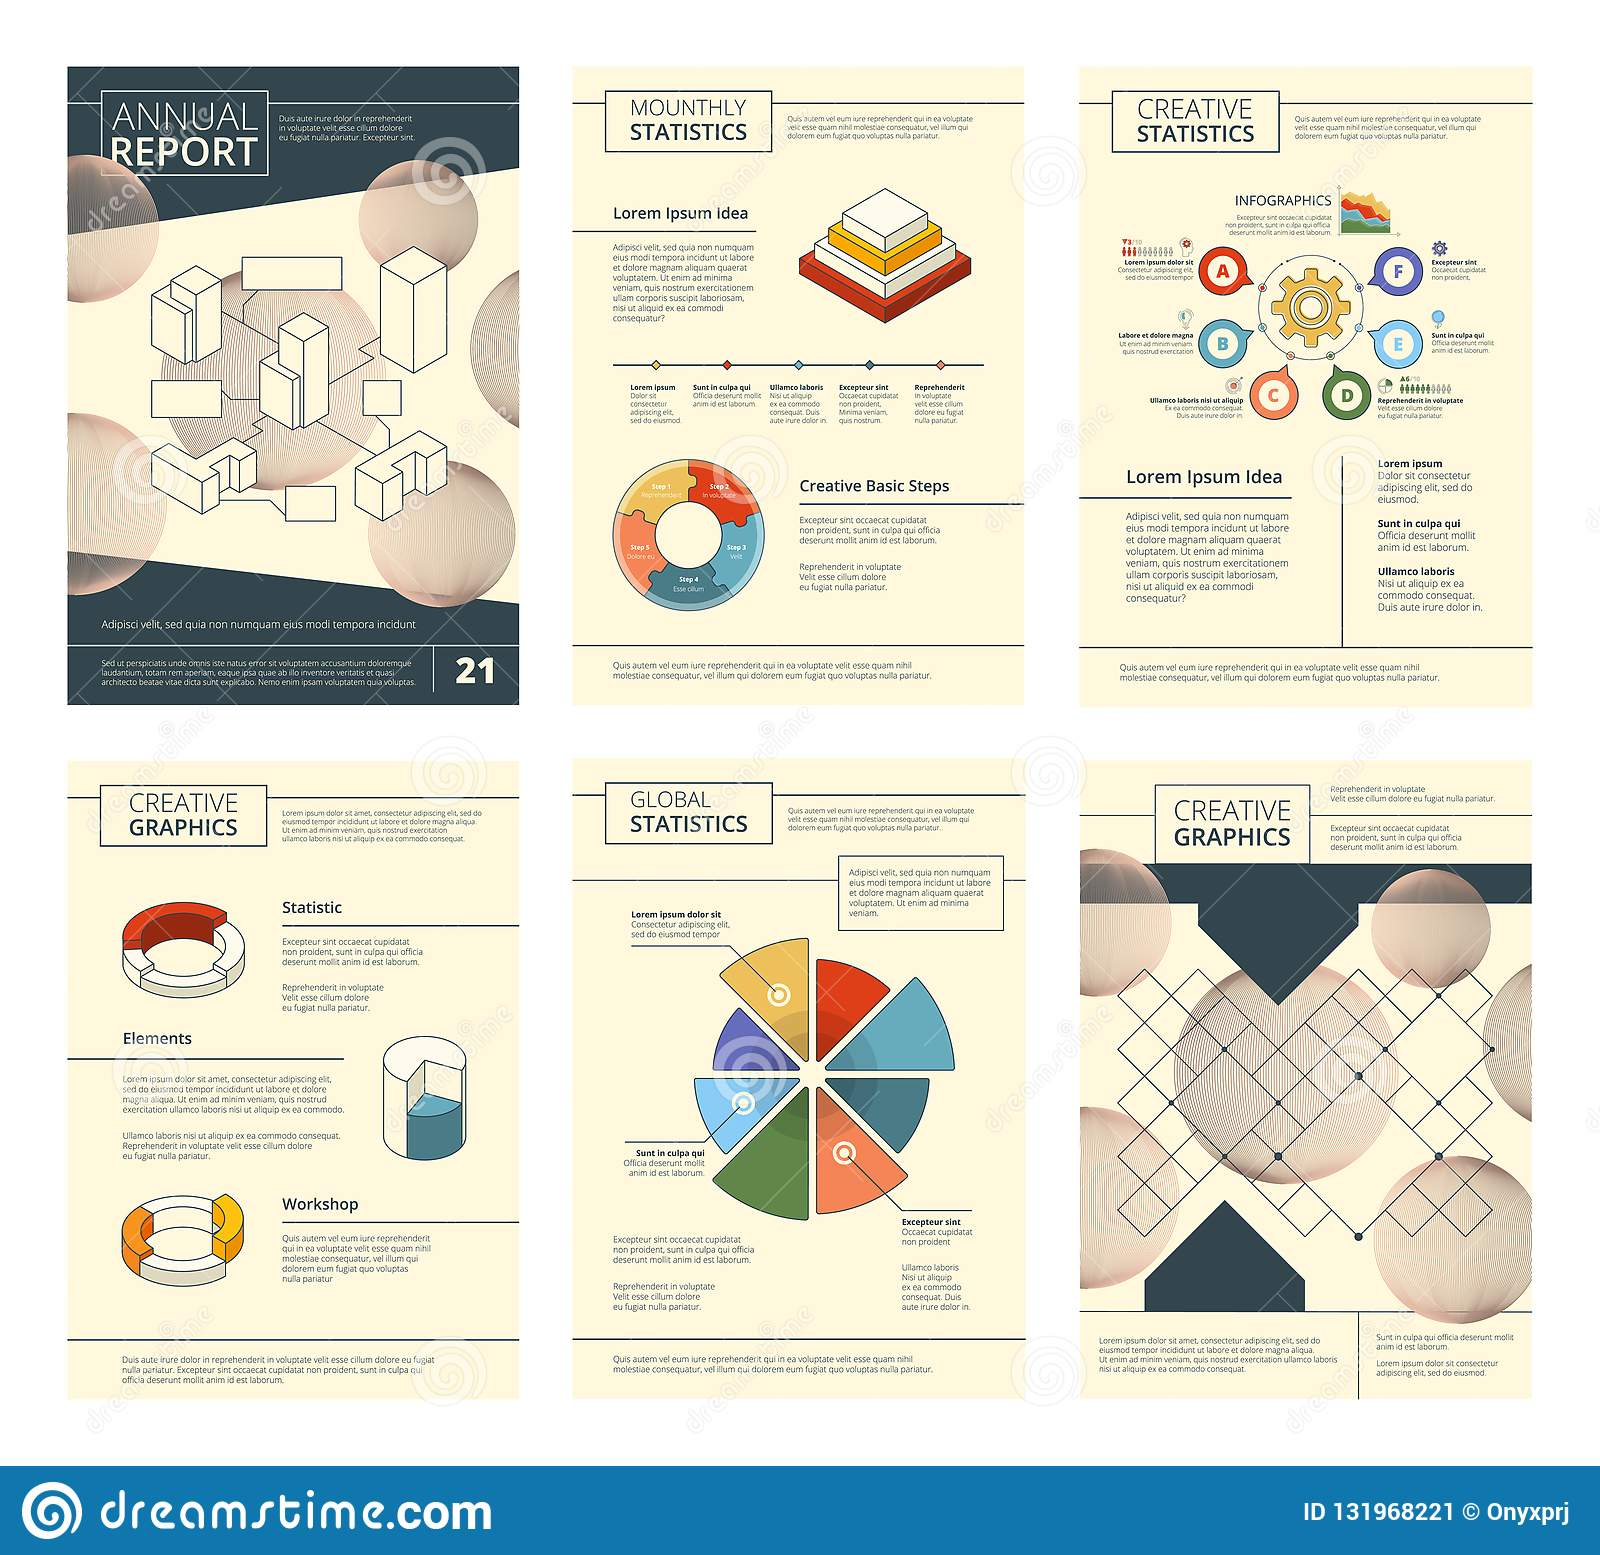 Annual report template. Report business company presentation banner flyers pages booklet vector design